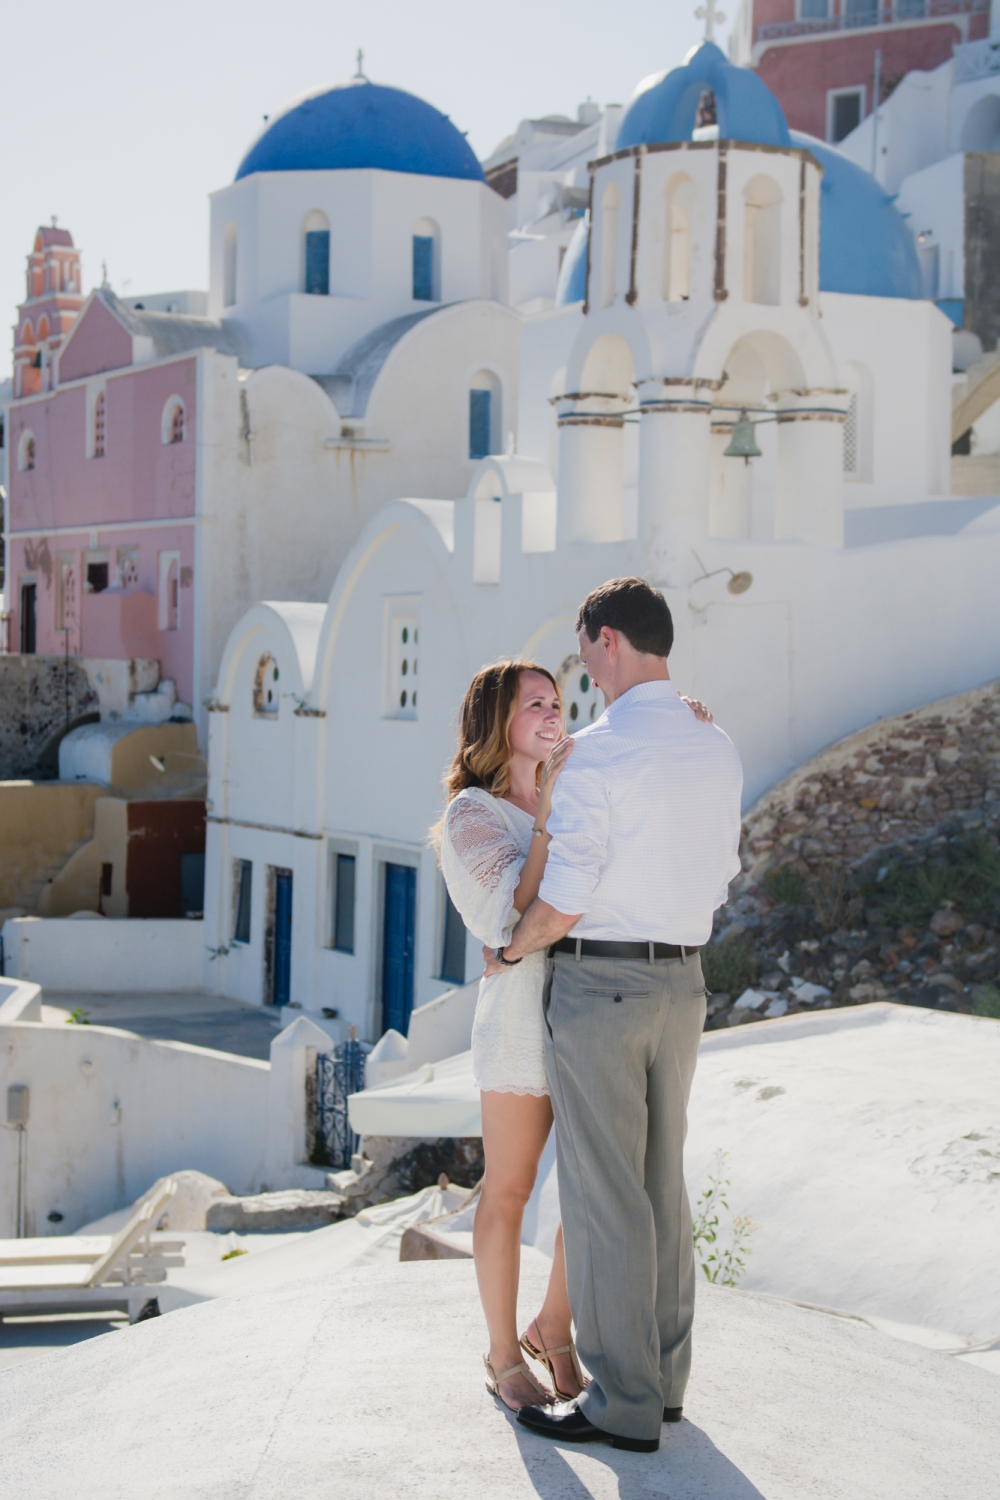 santorini-vacation-photosession-lifestyle-love-story-travel-002